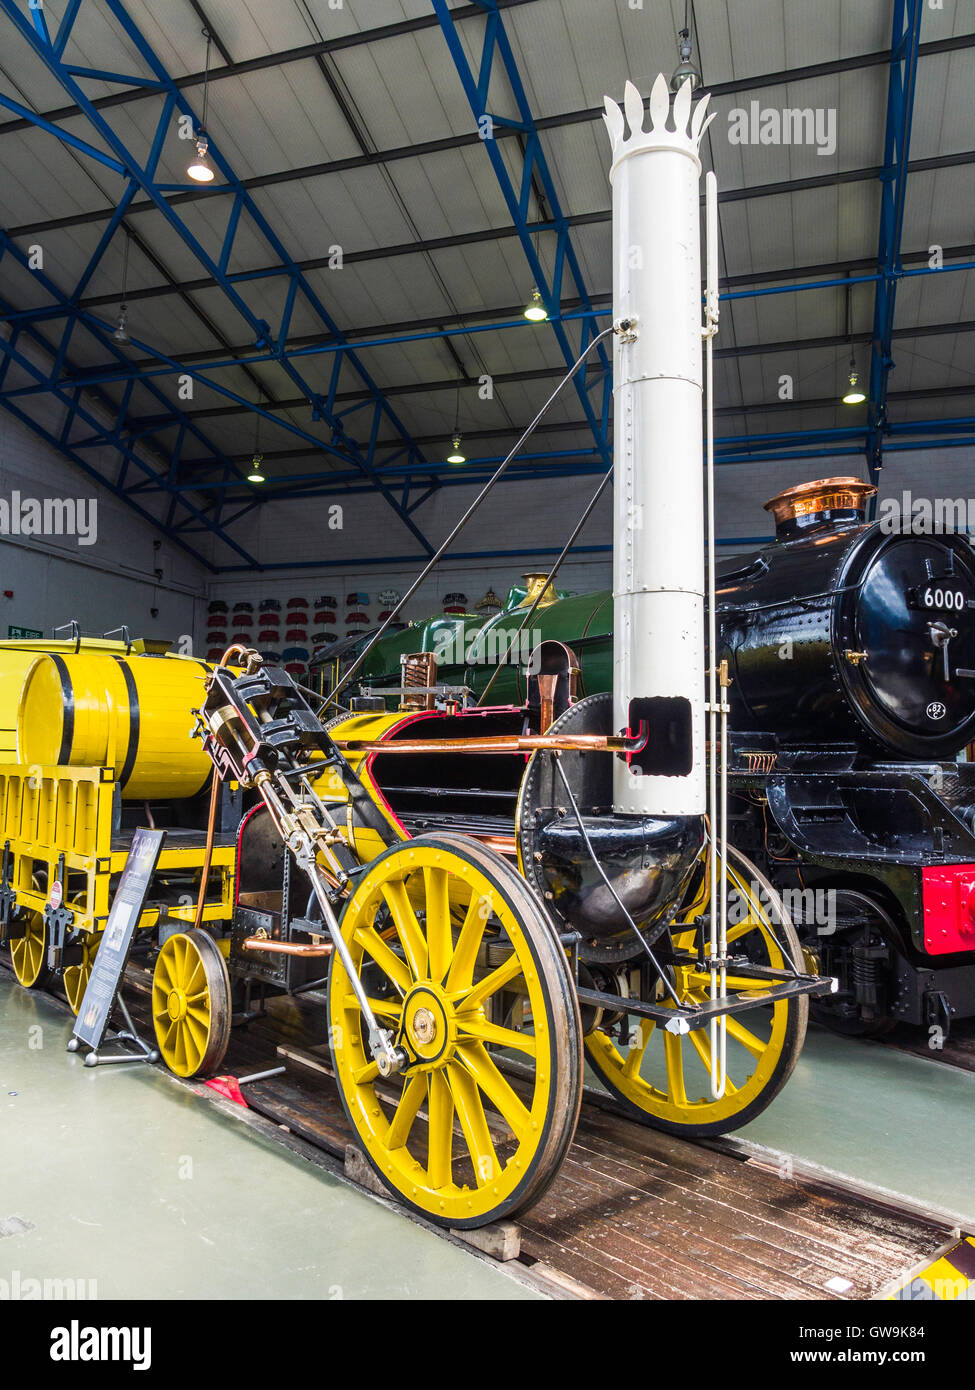 A working replica of Stephenson's 'Rocket' 0-2-2 early steam locomotive, seen at National Railway Museum, - Stock Image